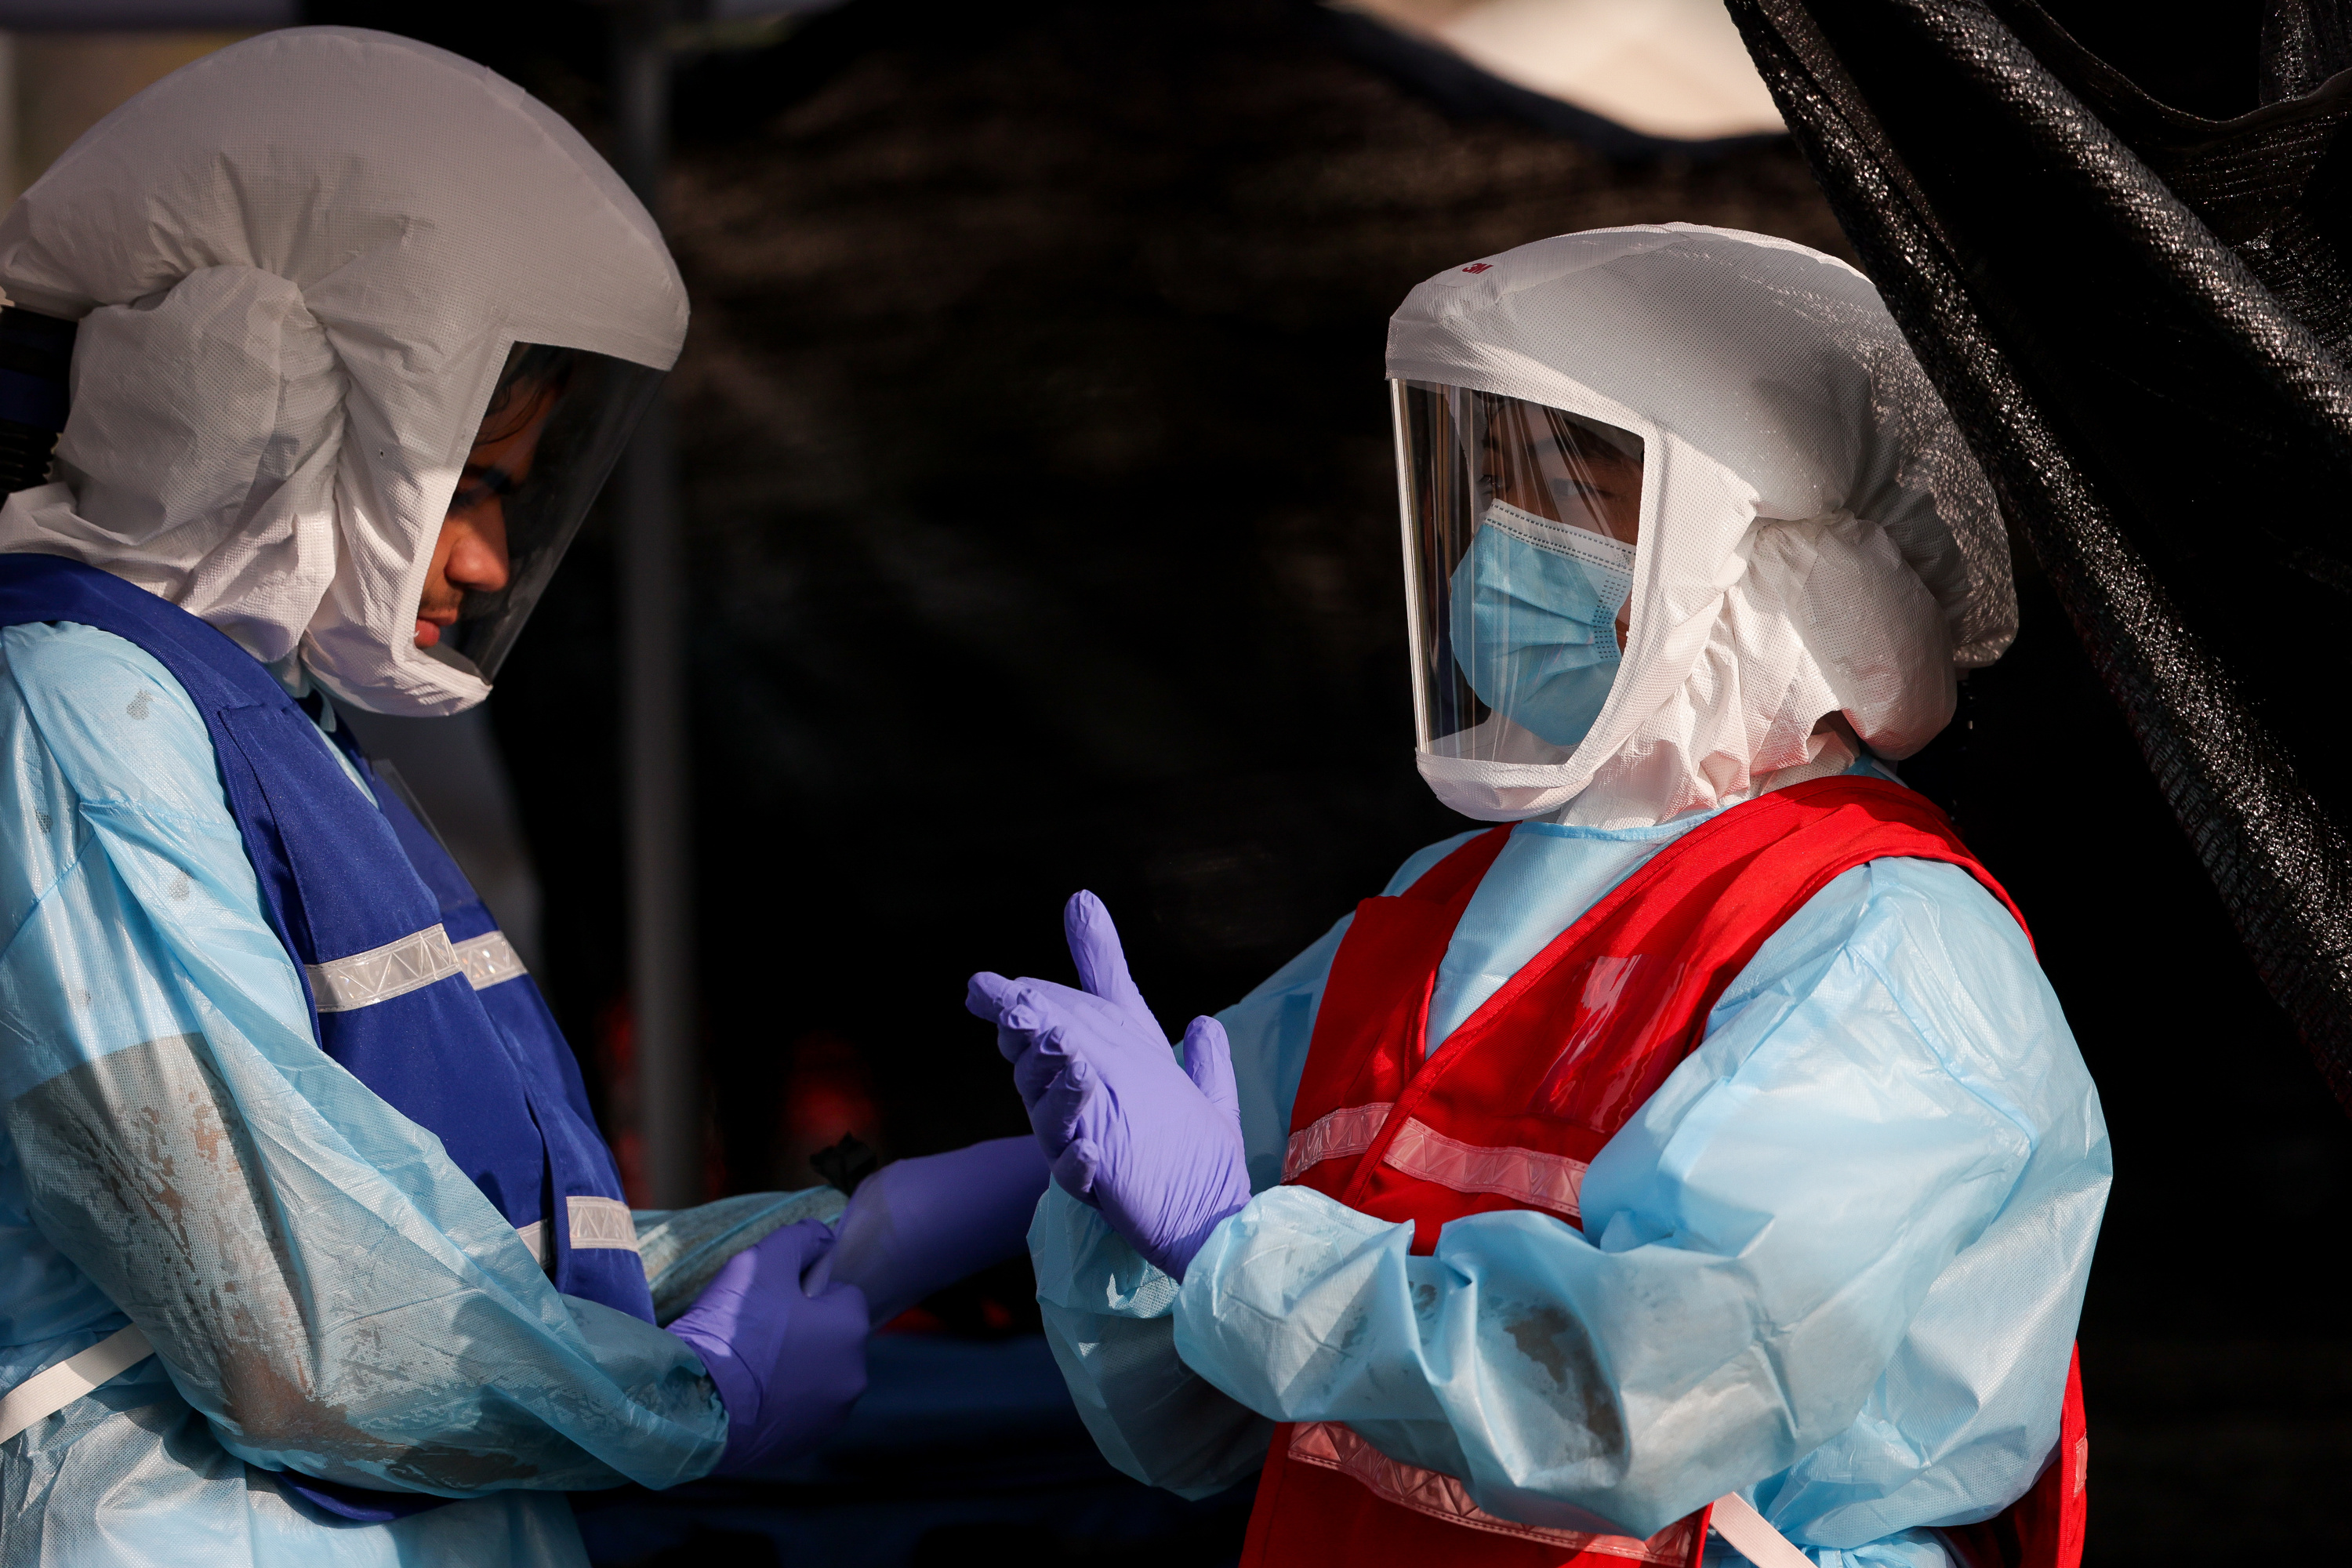 Alborz Alimadadi and Yihao Qin work at a COVID-19 test site run by the Salt Lake County Health Department at Glendale Middle School in Salt Lake City on Tuesday, Sept. 15, 2020.